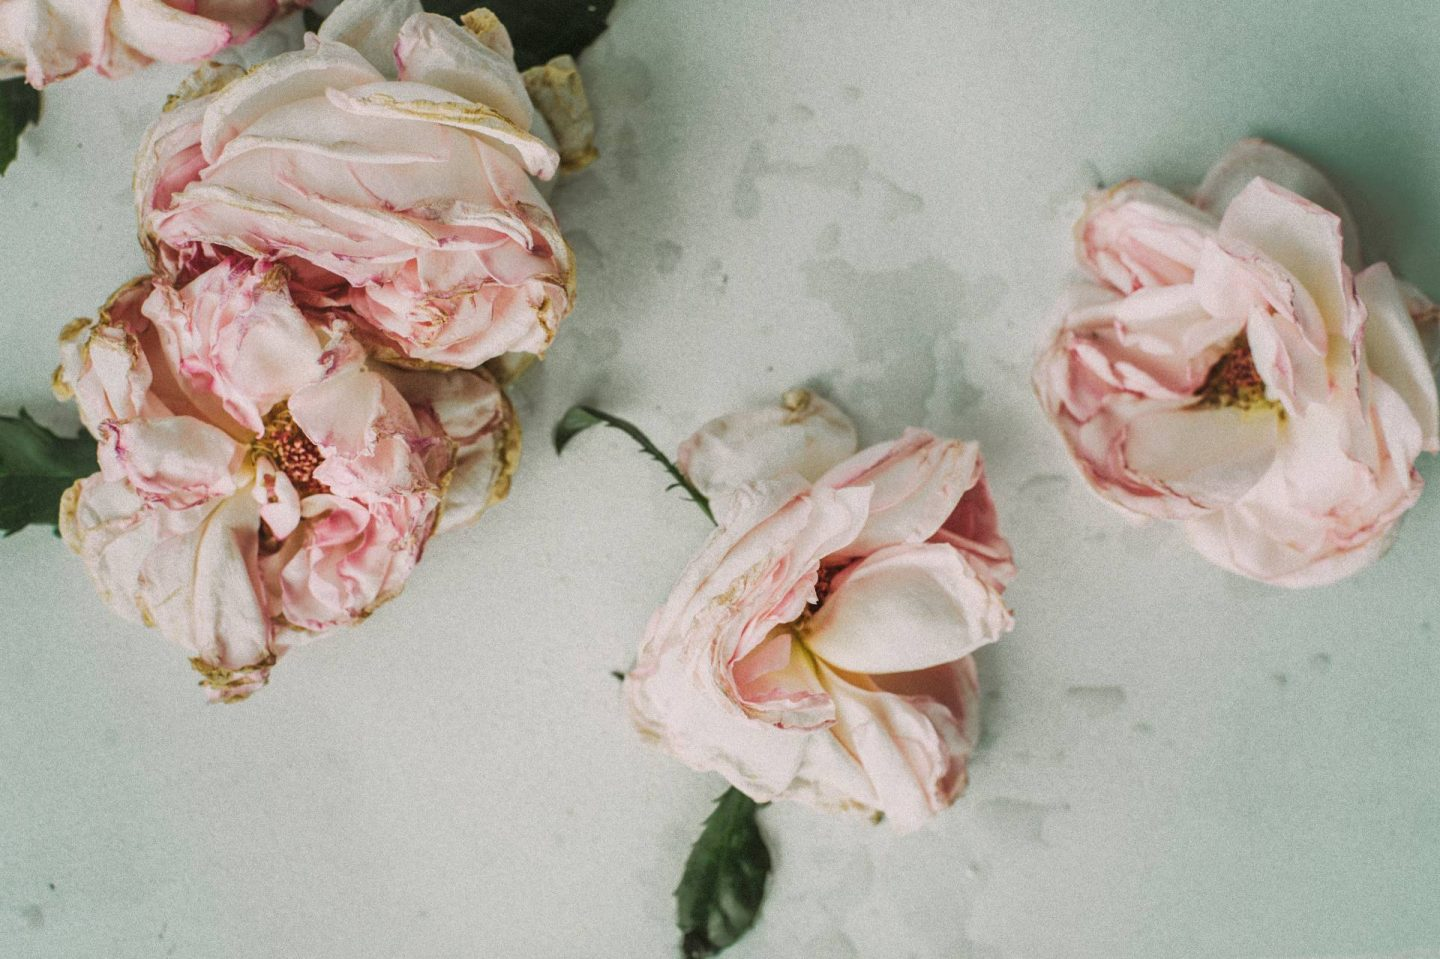 Advice For Coping With The Loss Of A Loved One